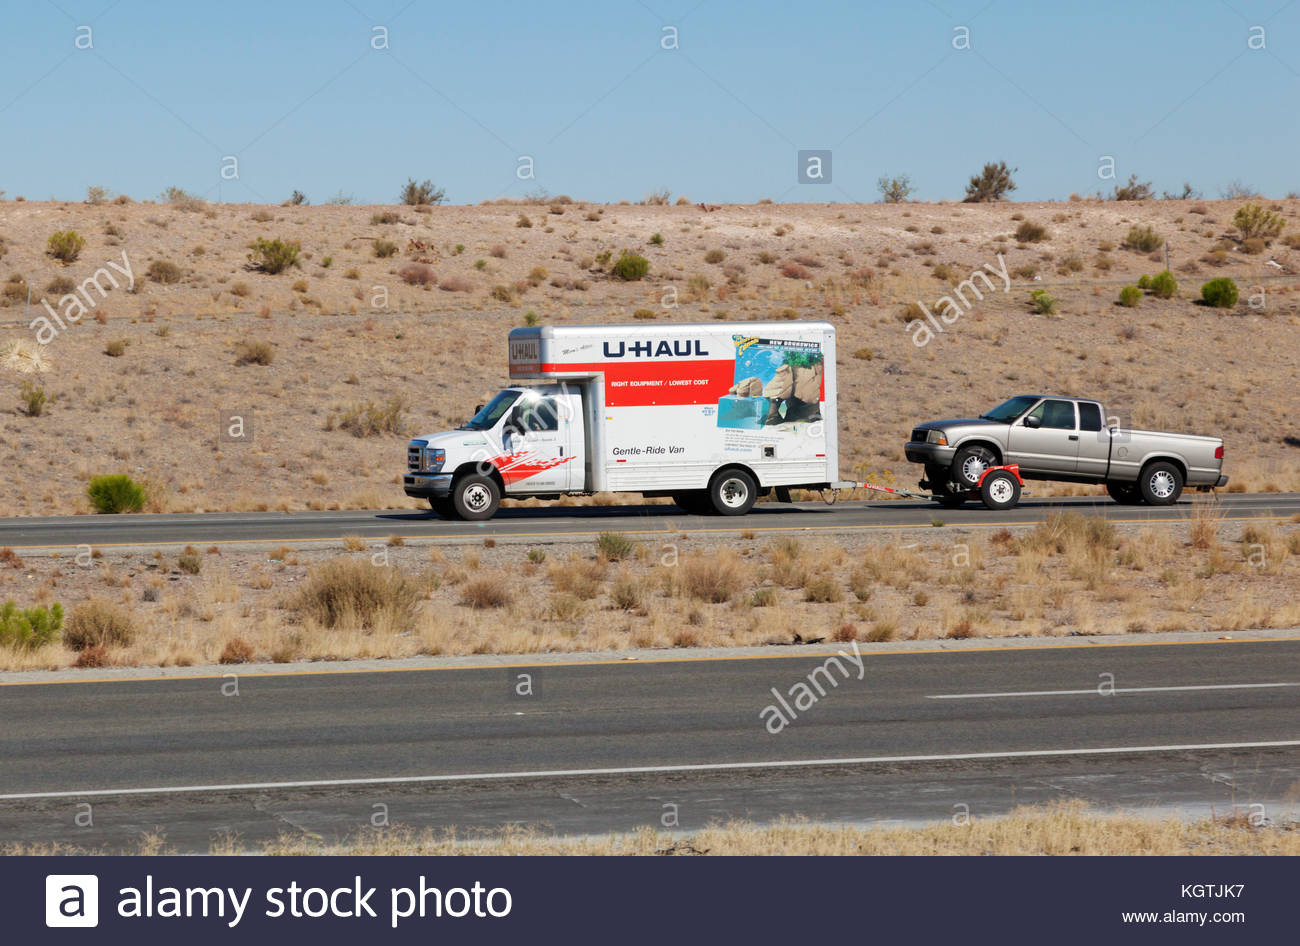 Cargo Truck Stock Photos & Cargo Truck Stock Images - Alamy